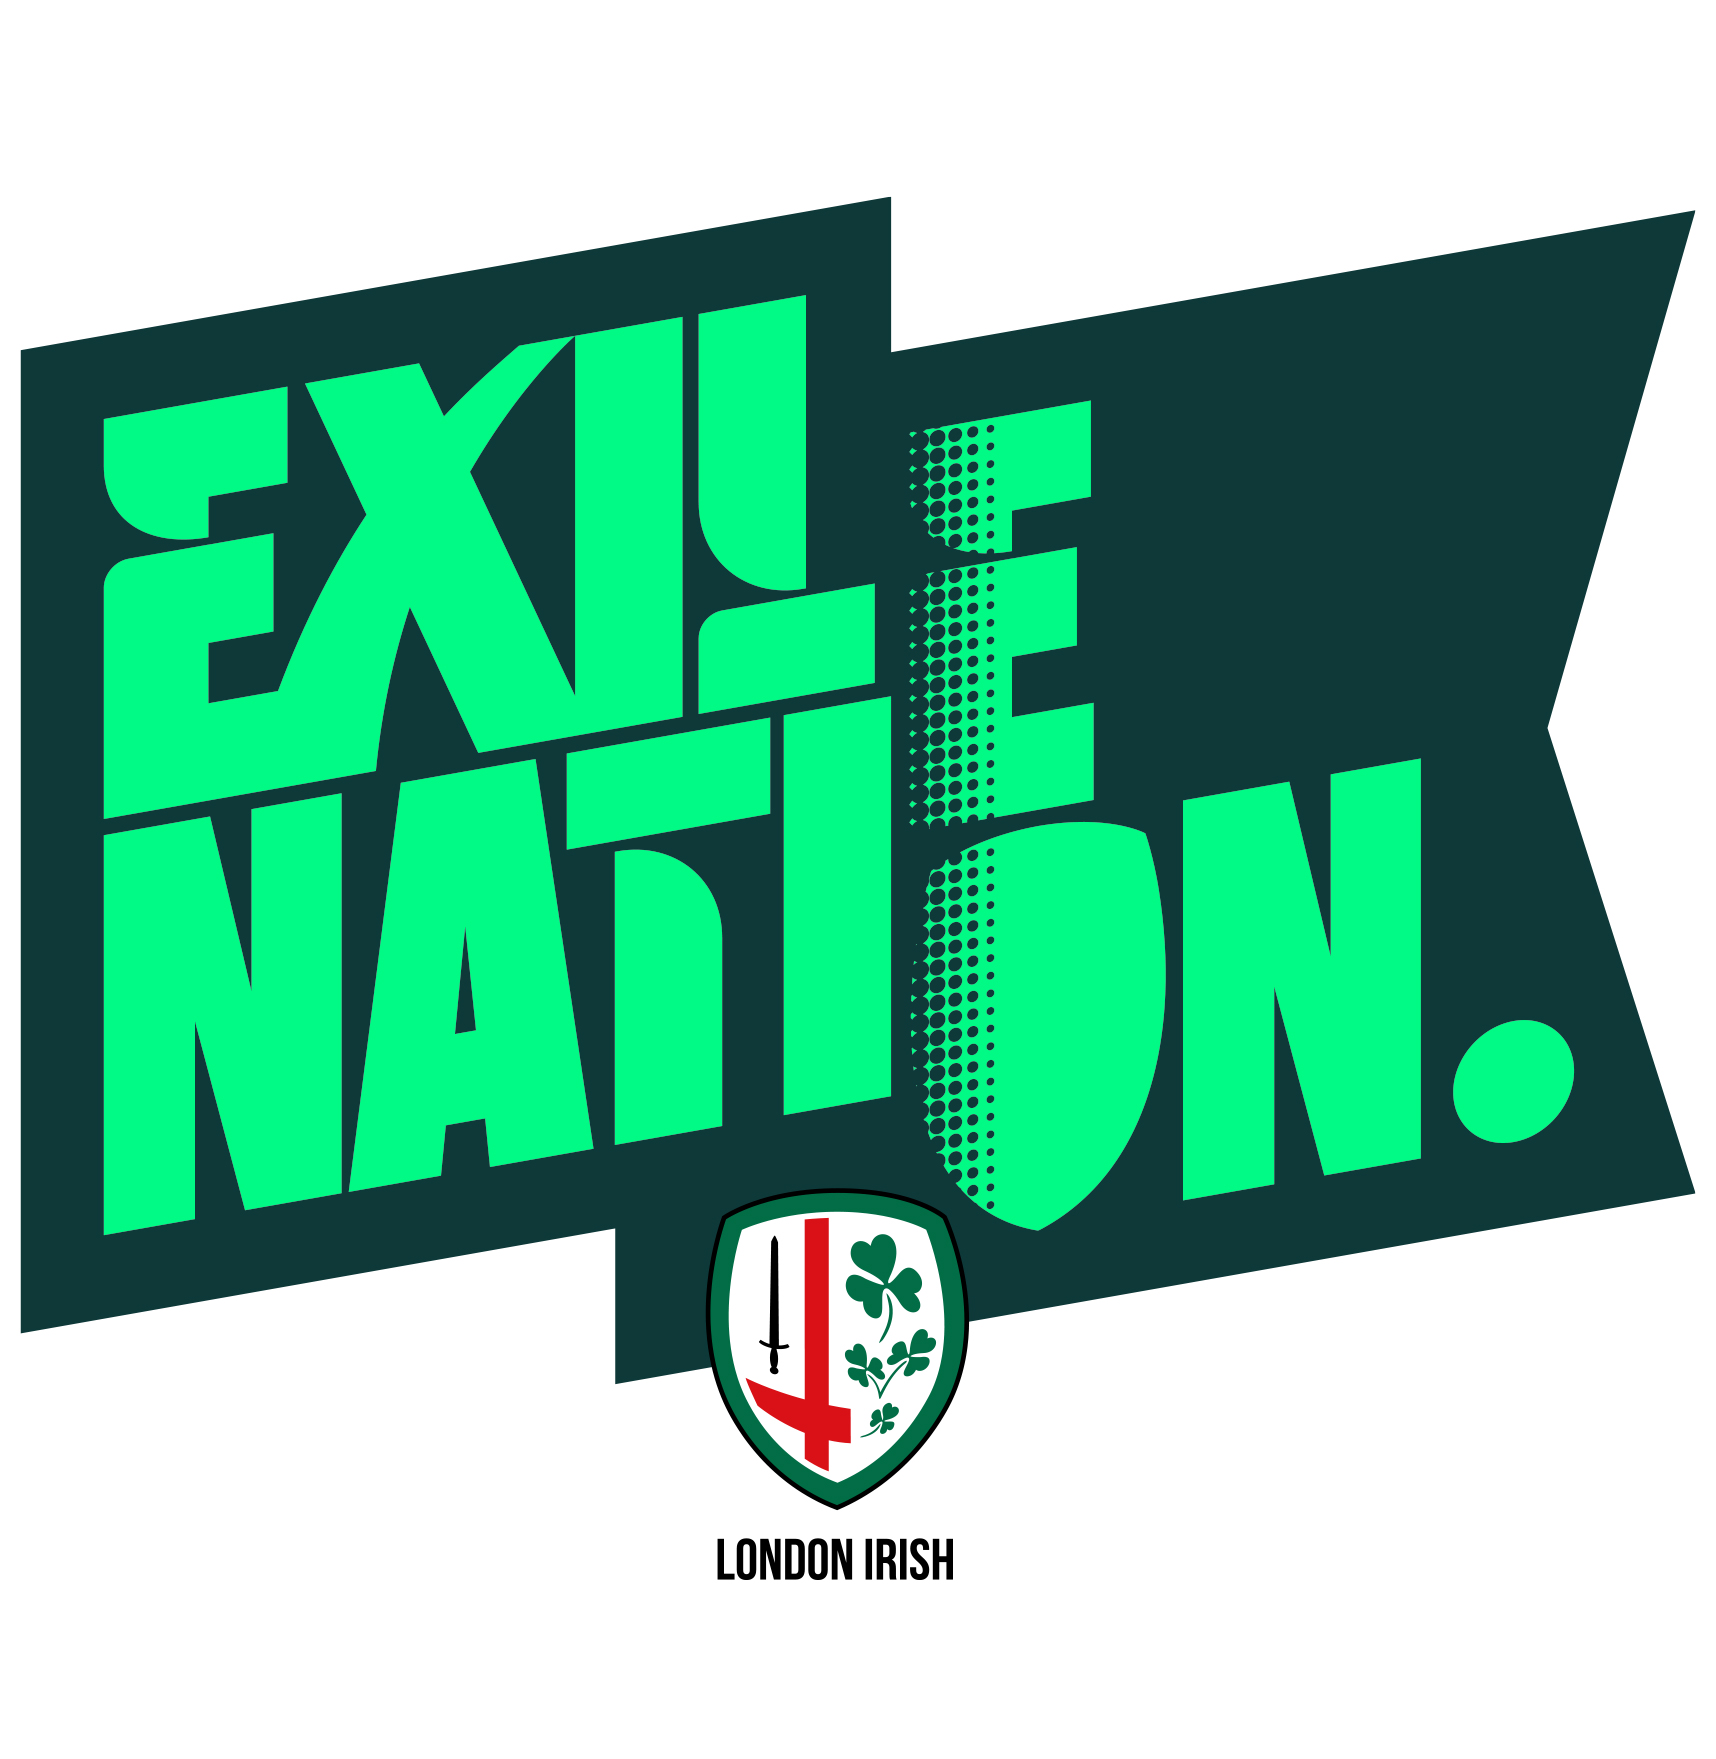 London Irish Exile Nation brand logo design